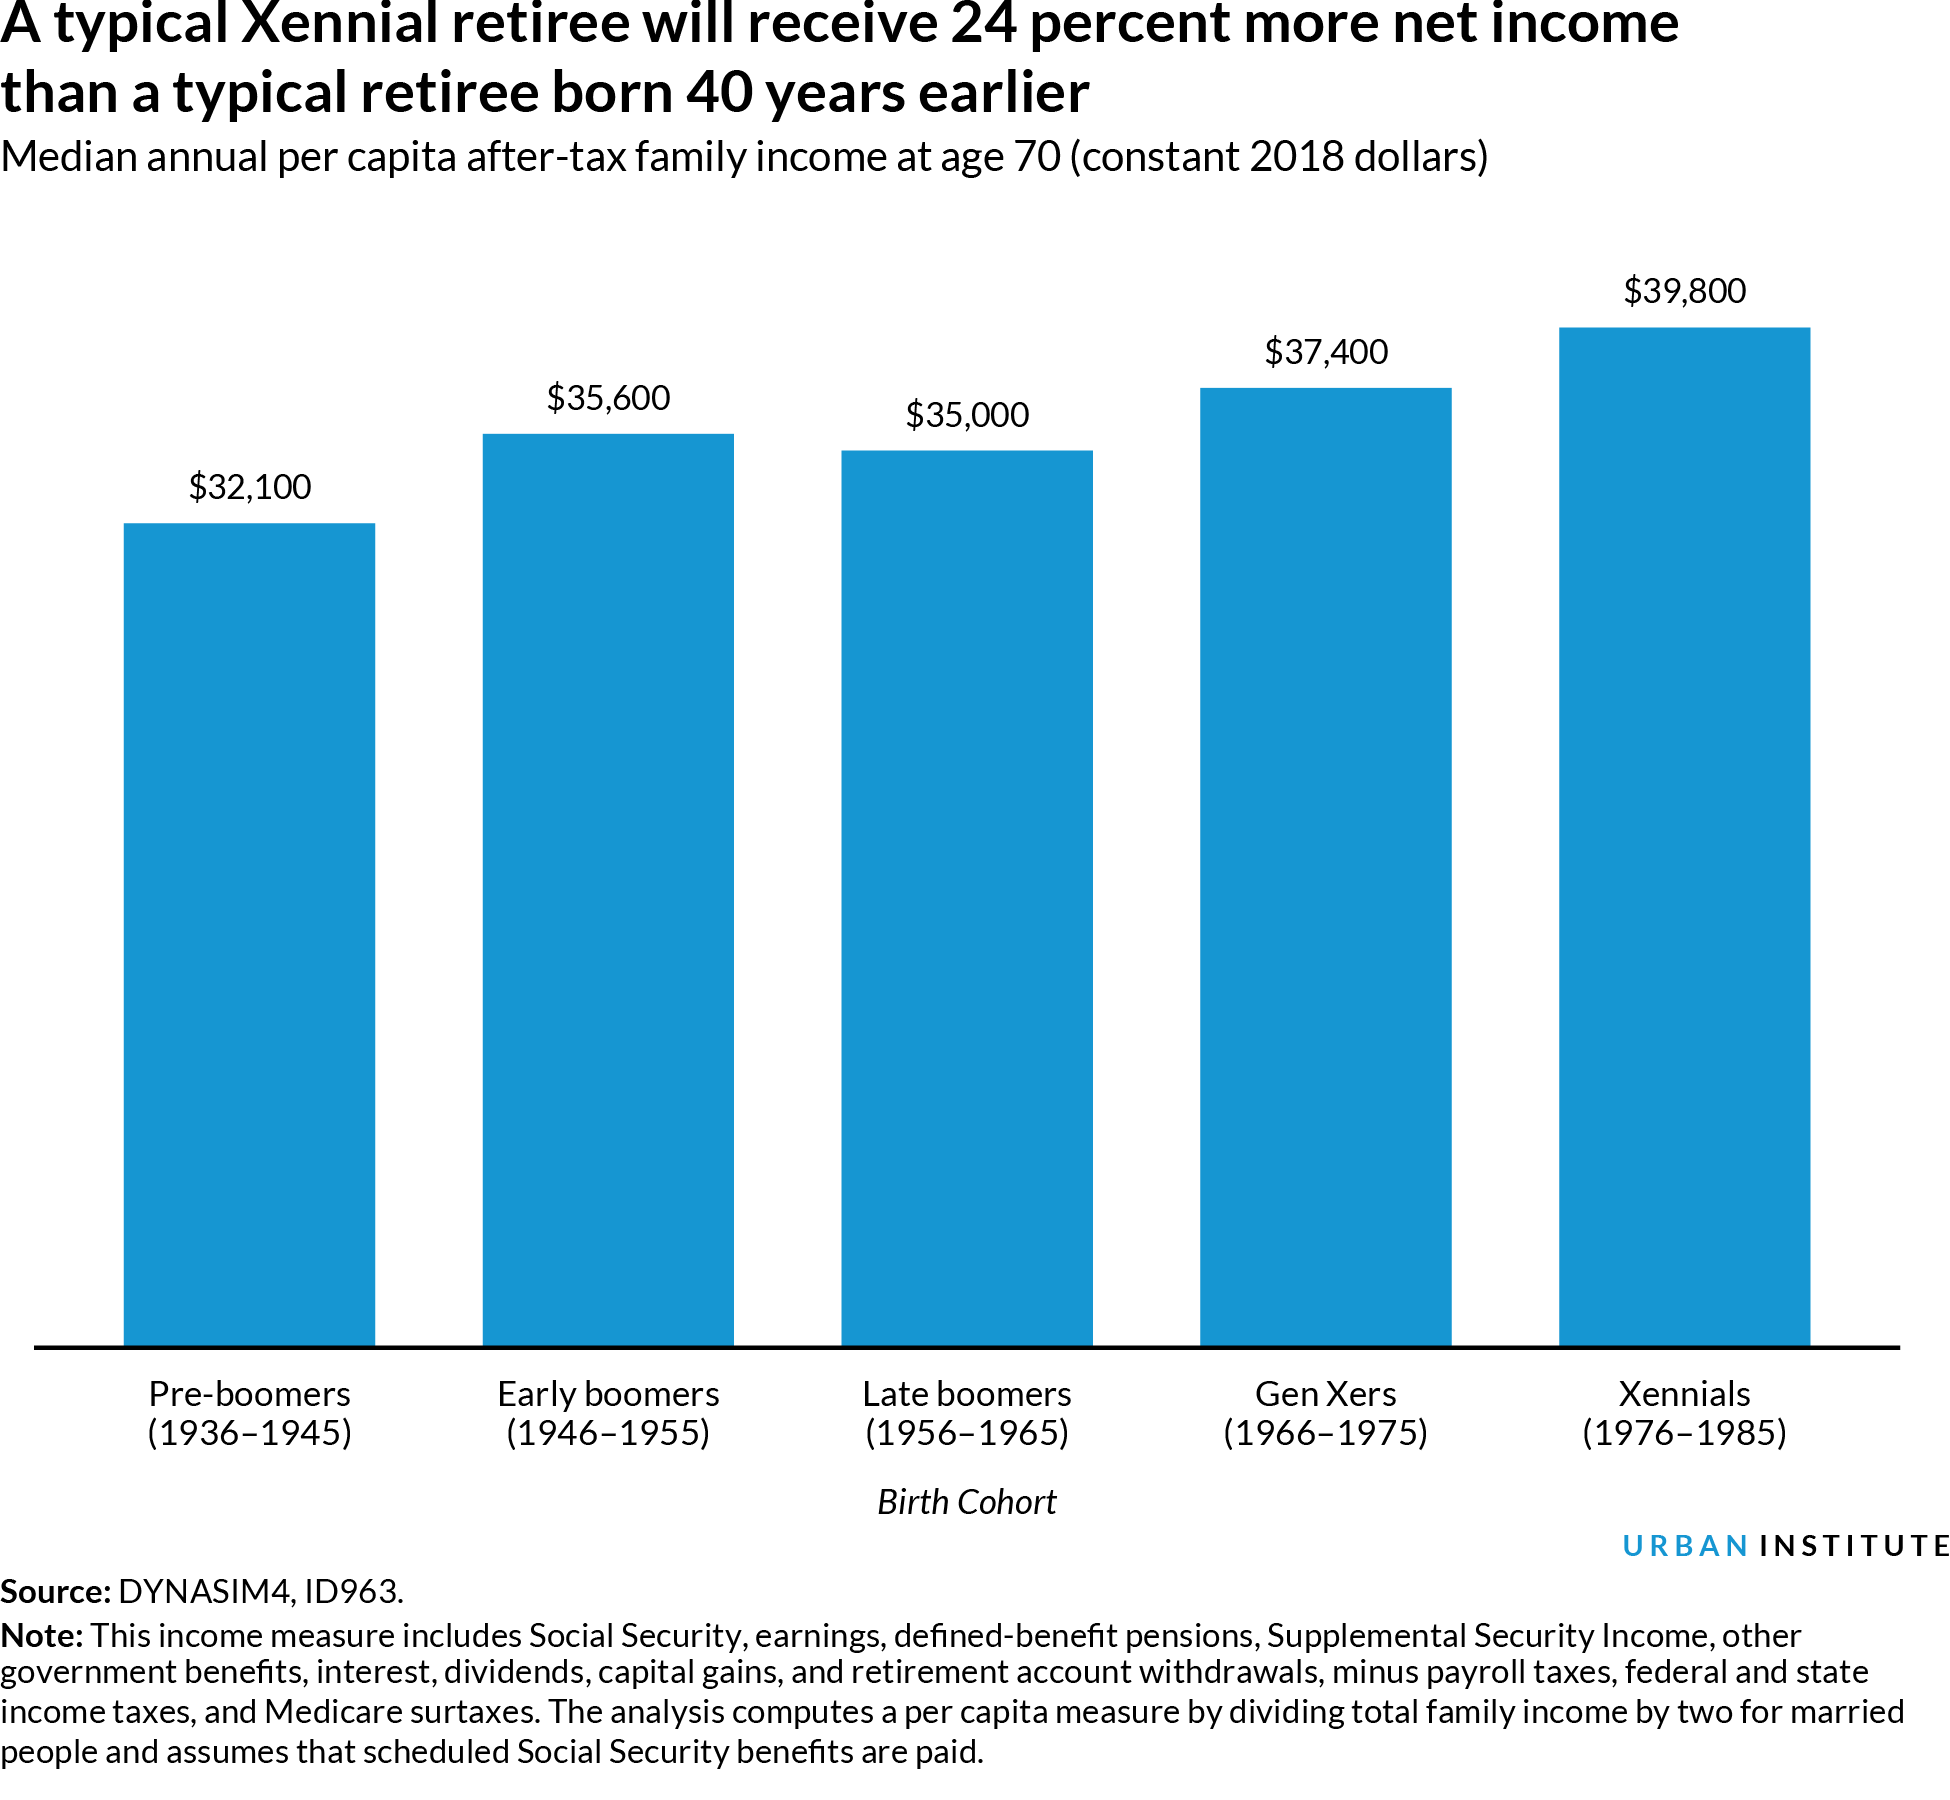 Bar chart of retirement incomes by cohort